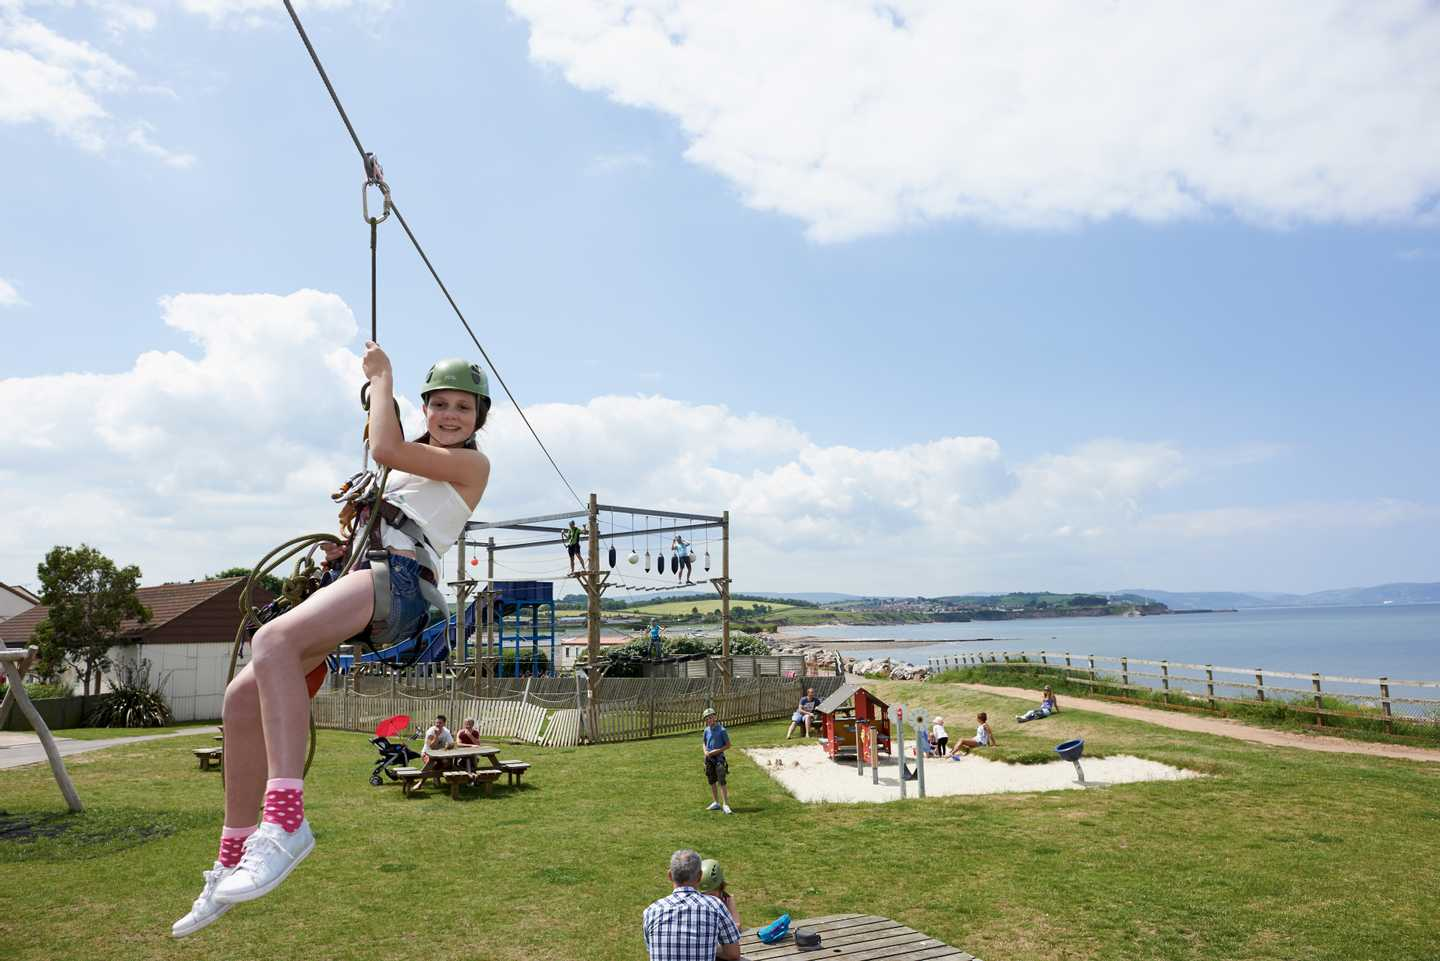 Children flying along on the zipwire